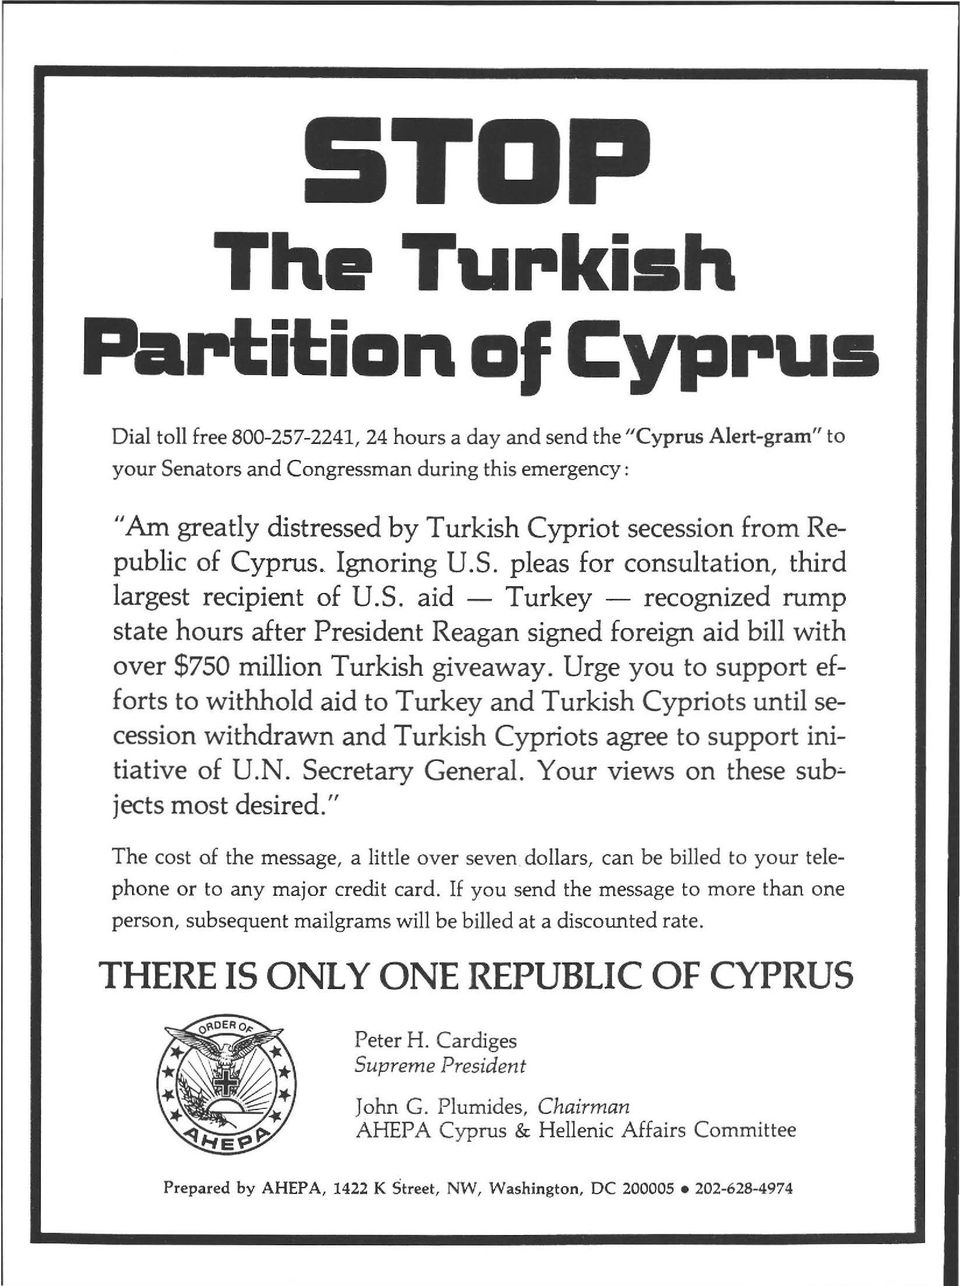 Urge you to support efforts to withhold aid to Turkey and Turkish Cypriots until secession withdrawn and Turkish Cypriots agree to support initiative of U.Ν. Secretary General.